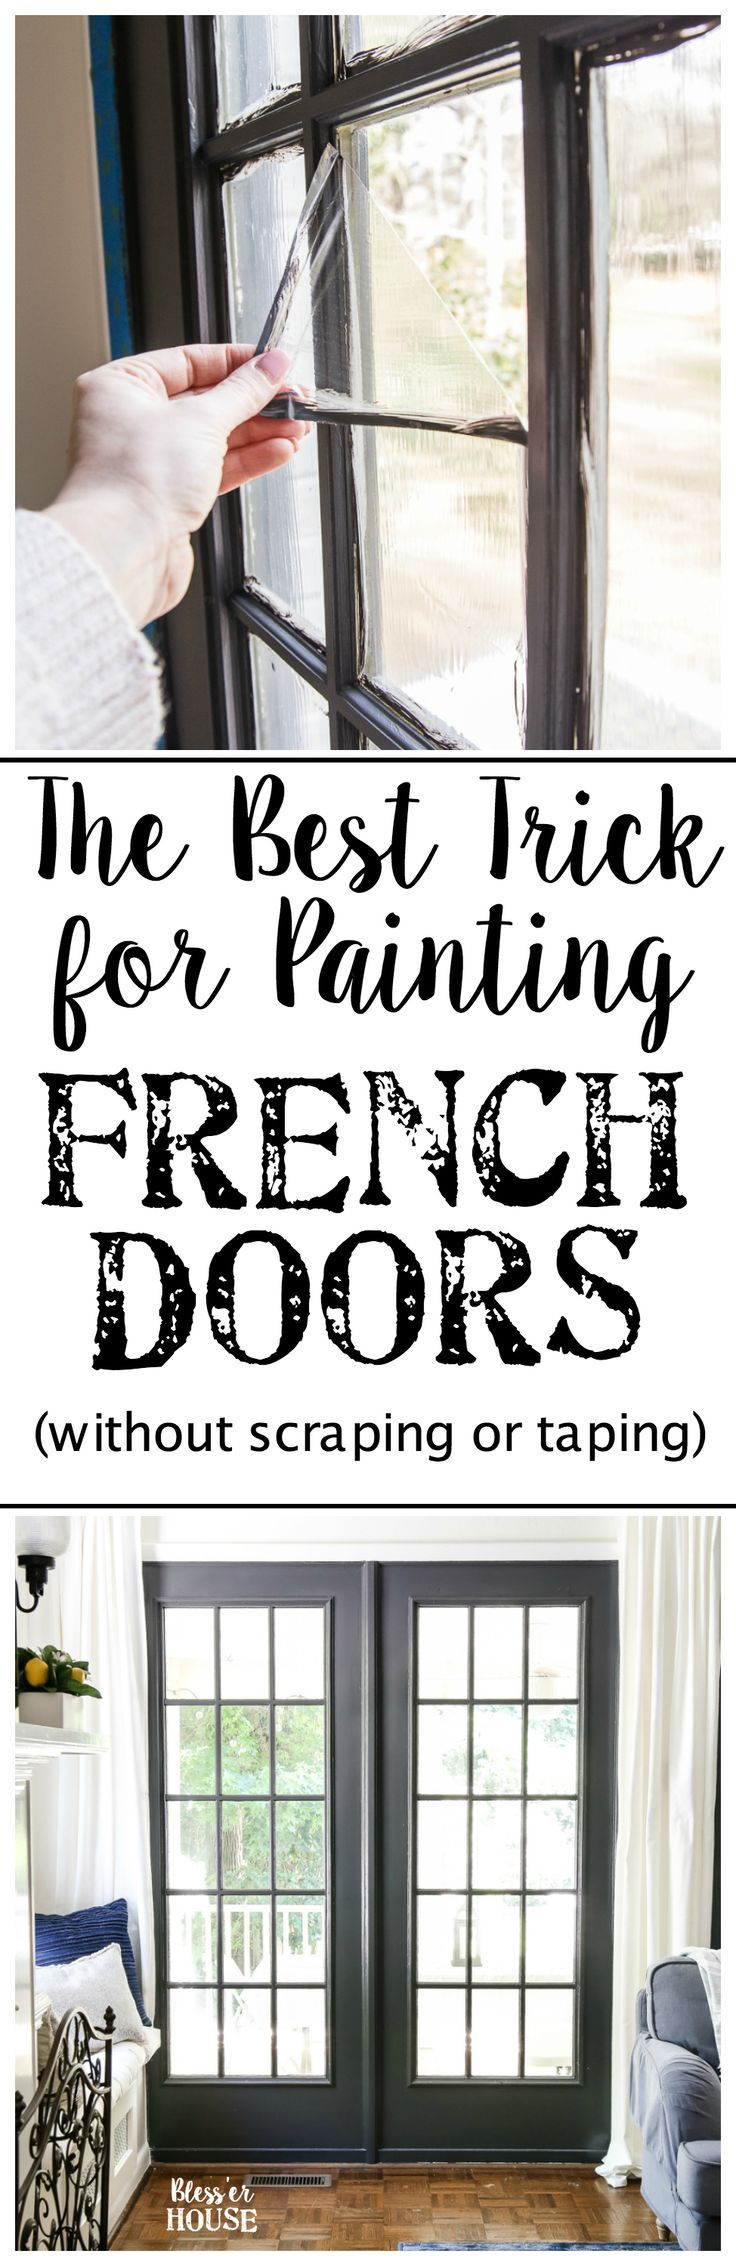 The Best Trick for Painting French Doors   blesserhouse-com - A quick tip for painting French doors without scraping, taping, or splotchy peeling paint.  This trick saves SO much time and looks amazing like a factory finish! #paintingtips #diytips #french